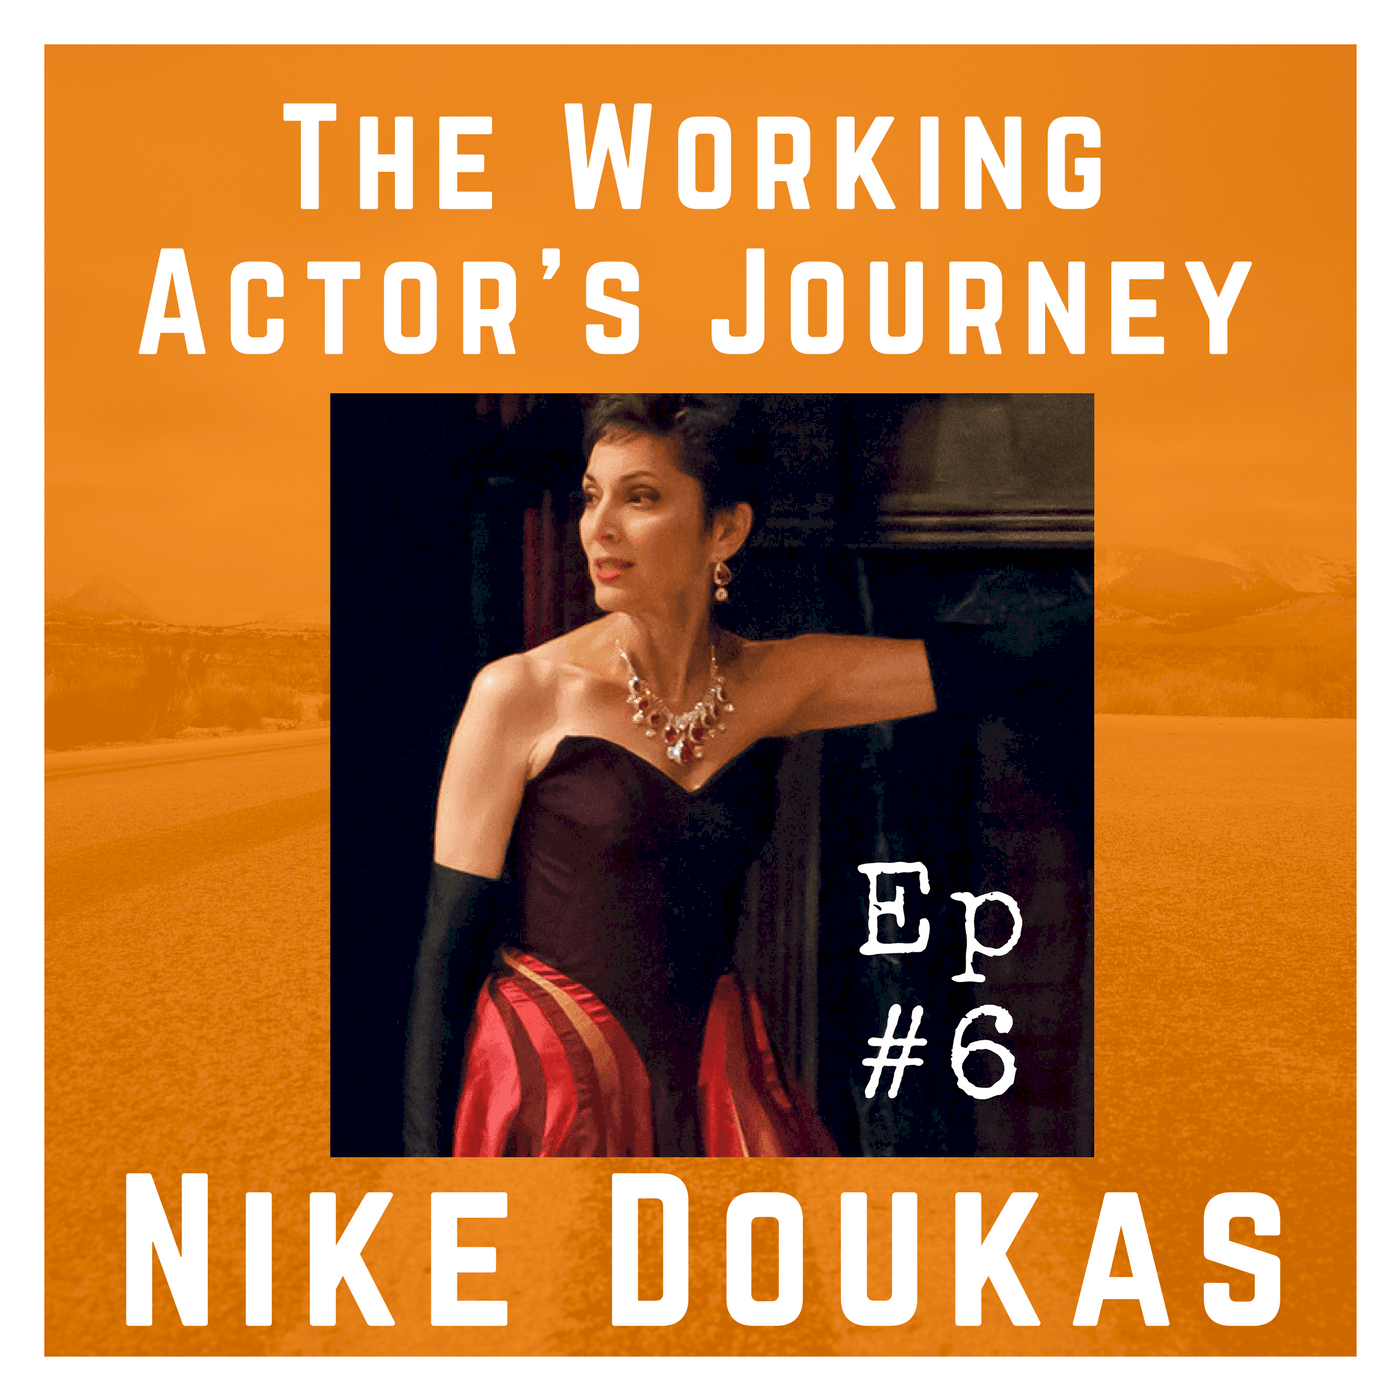 Ep 6 with Nike Doukas